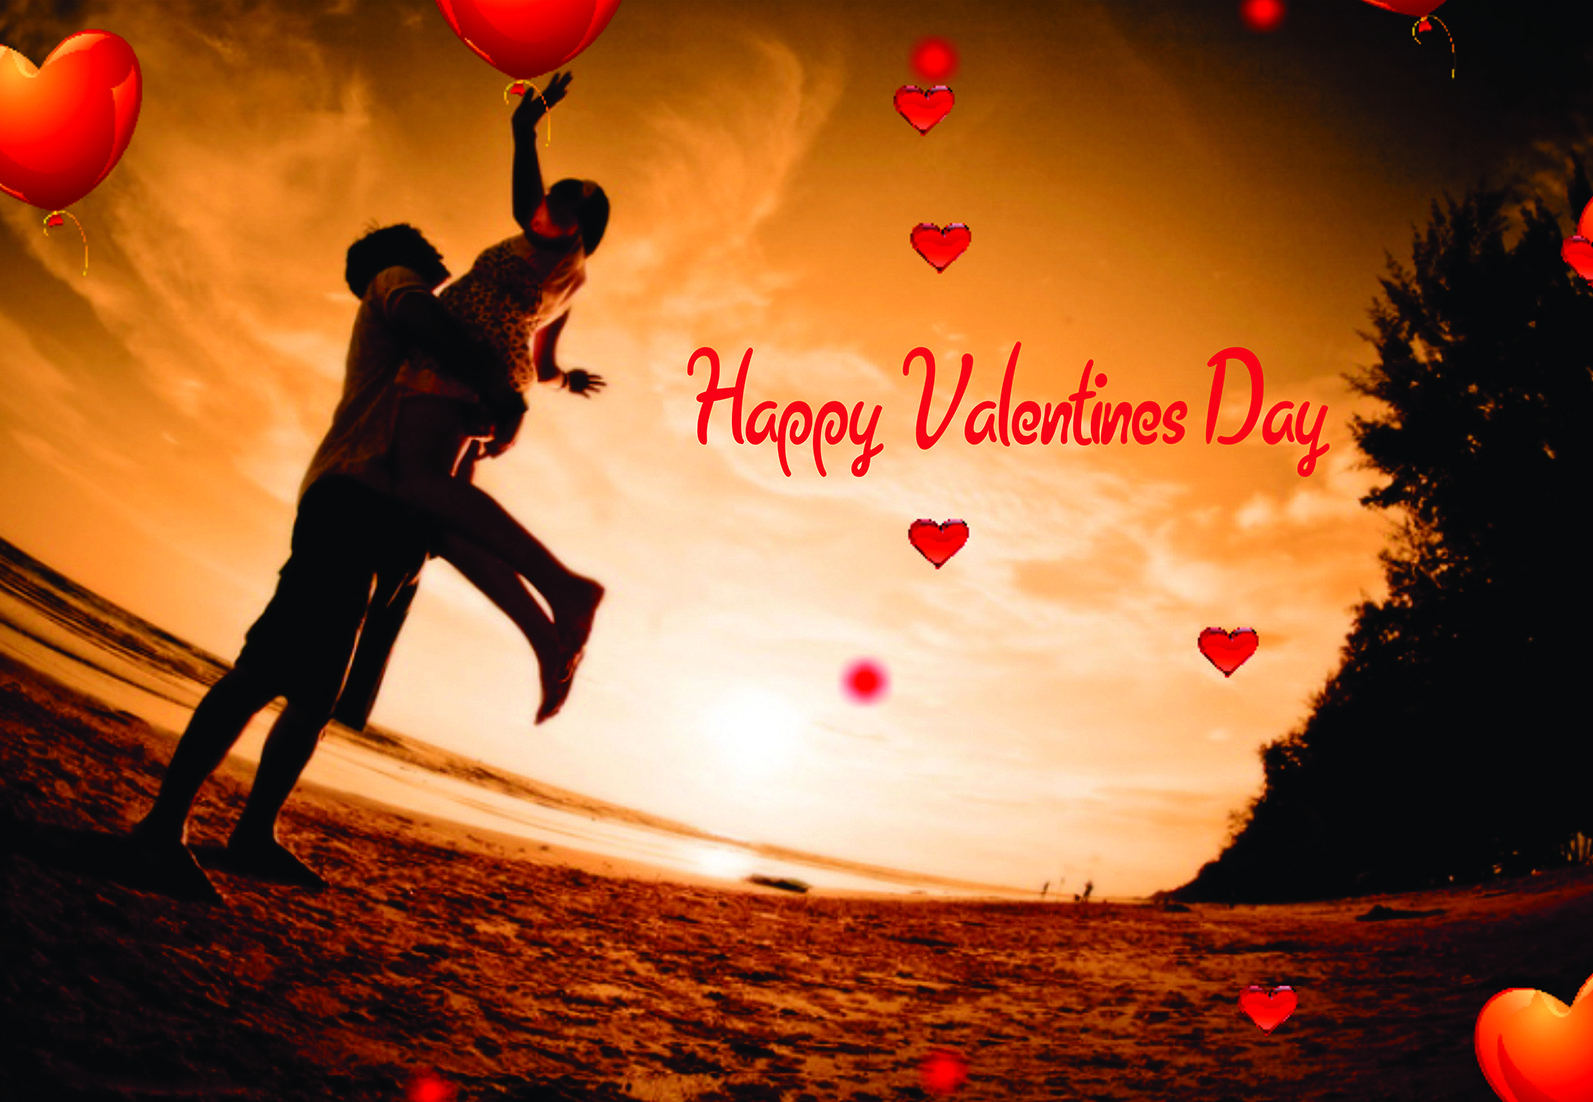 Love Wallpapers Mobile : Valentine s Day HD Wallpaper